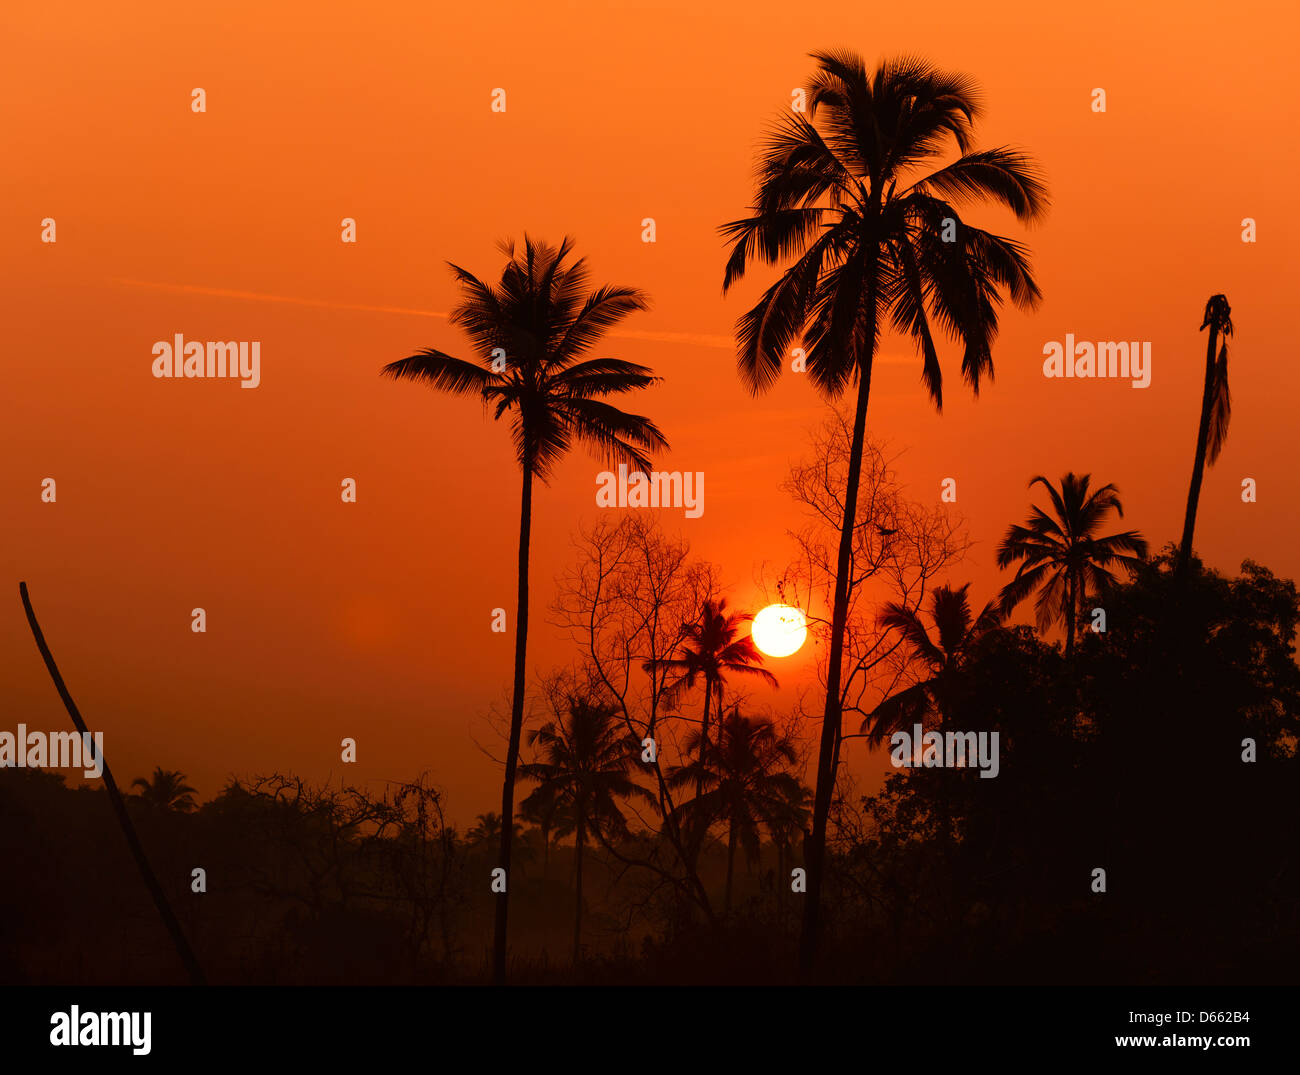 Sunrise in the village of Tamborim in South Goa, India - Stock Image